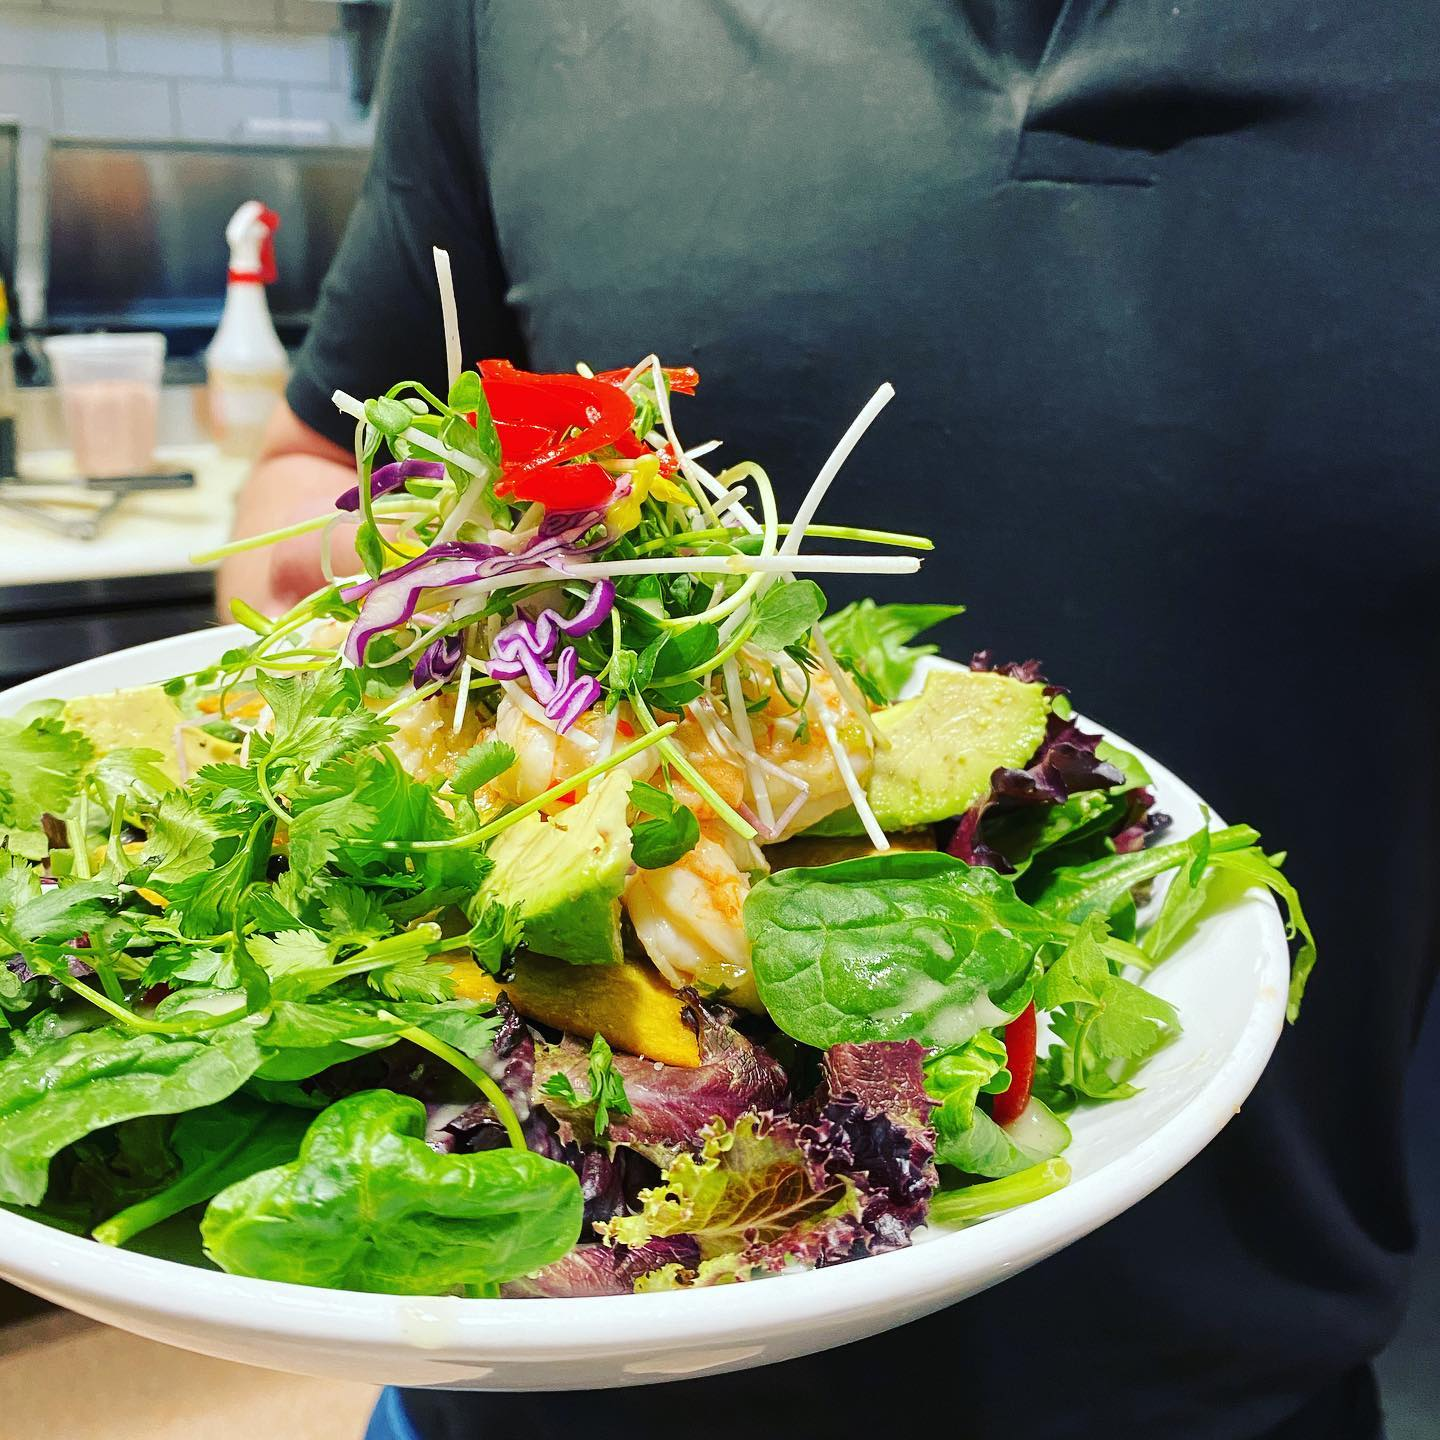 Shrimp Ceviche in a Bed of Salad & Microgreens